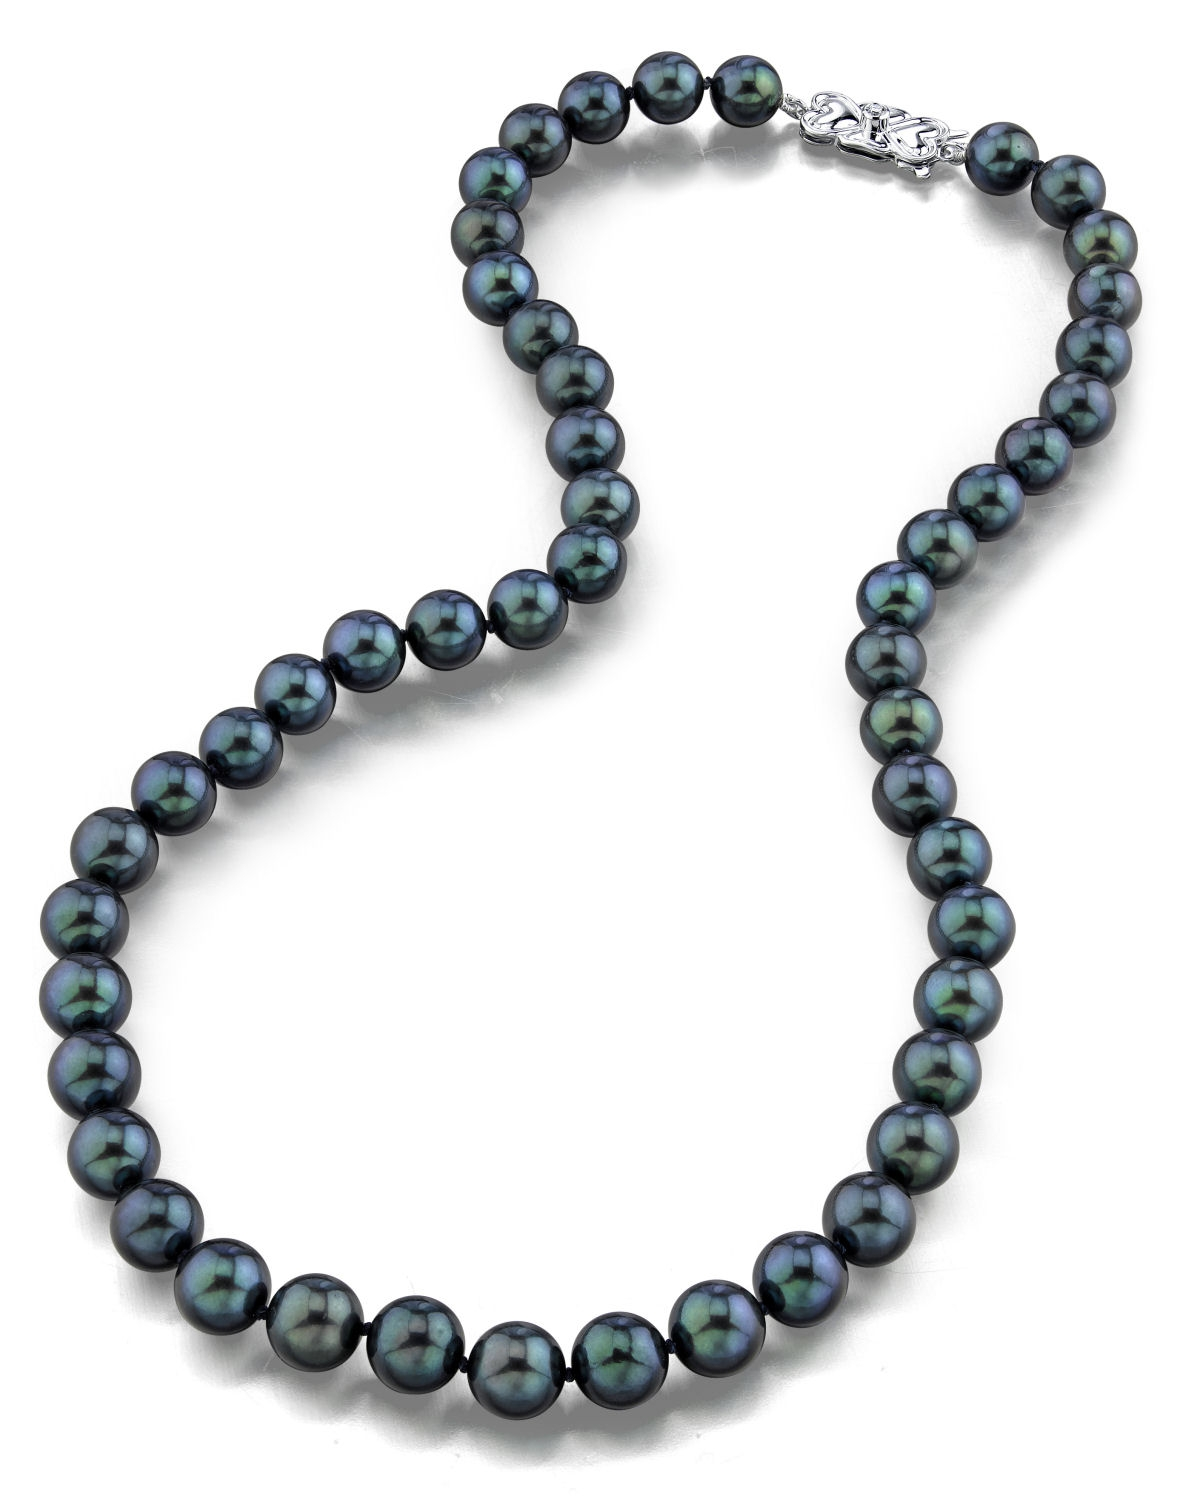 8.0-8.5mm Japanese Akoya Black Pearl Necklace- AAA Quality